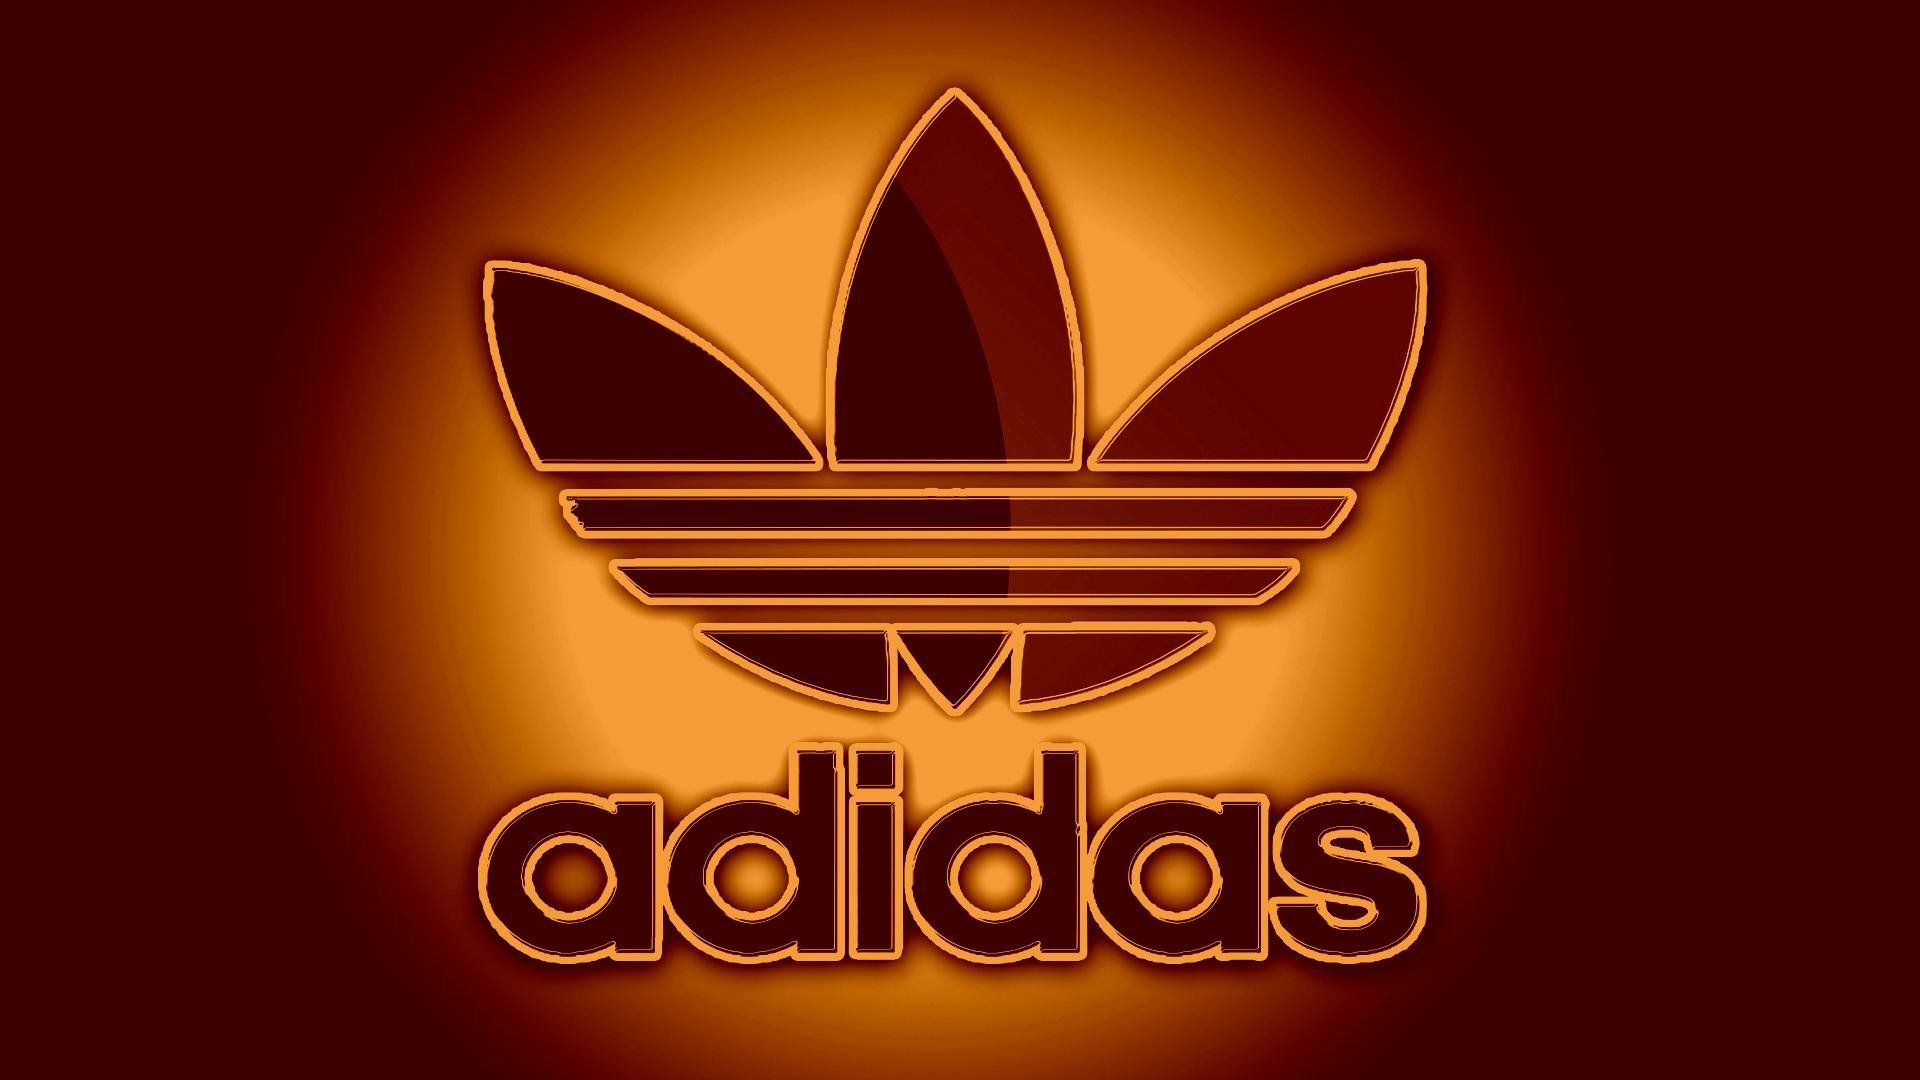 The Wallpapers Adidas